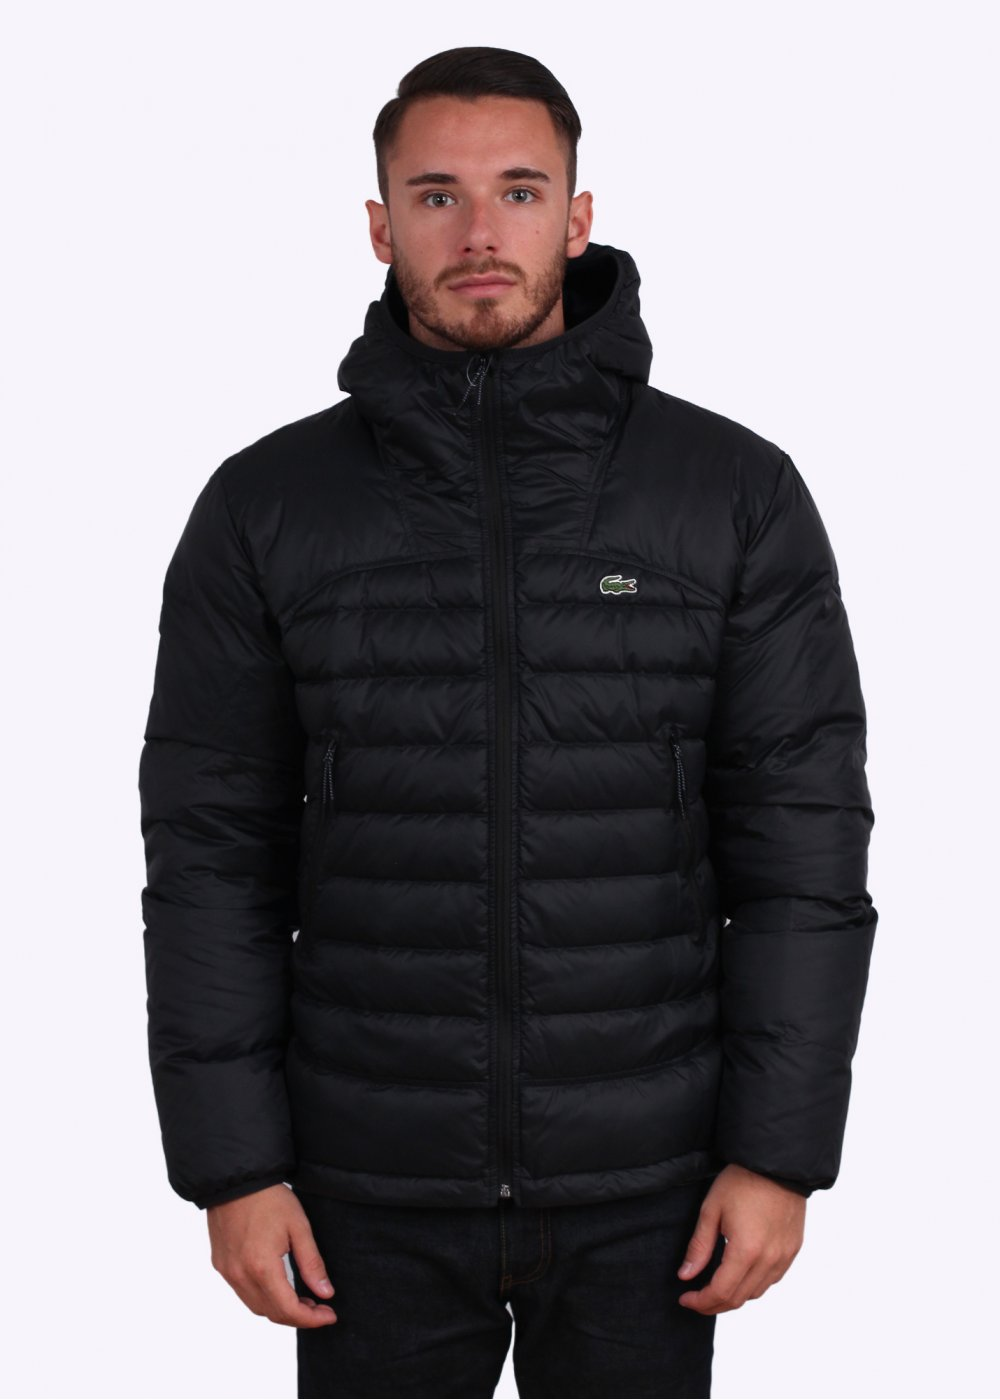 vente chaude en ligne 7a319 04d37 Lacoste Padded Hooded Jacket - Black